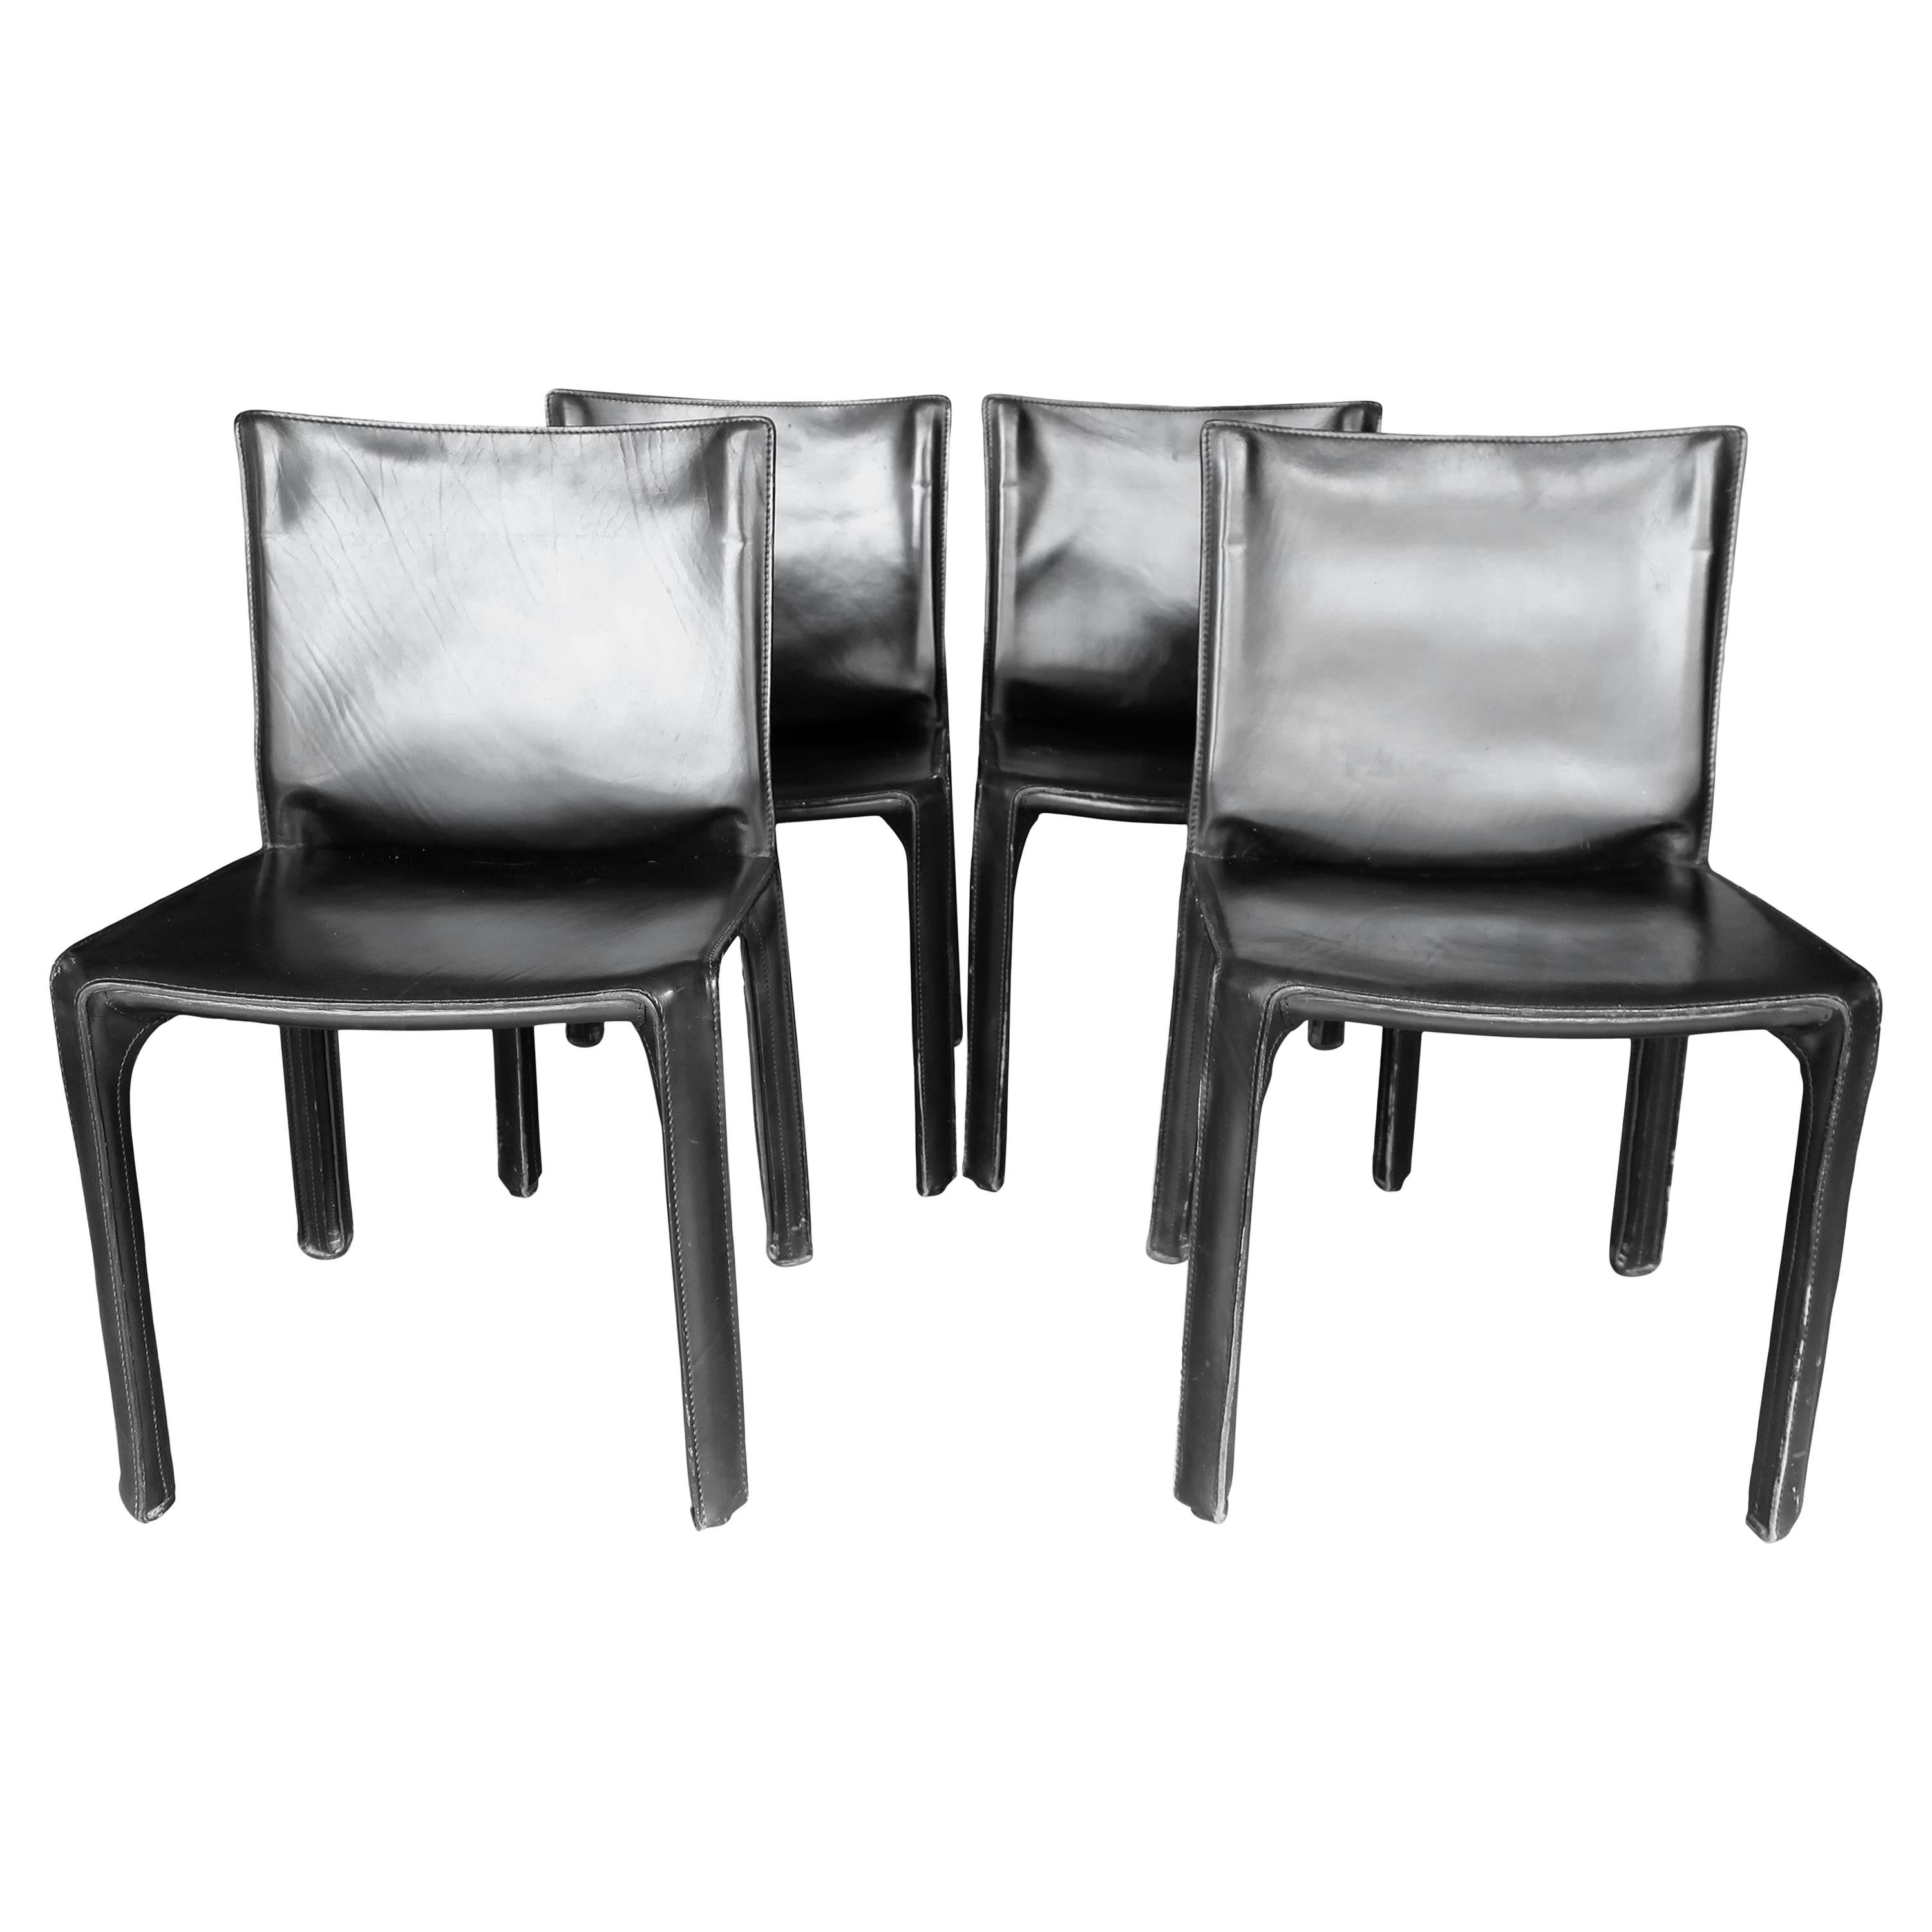 Set of Four Black Leather CAB 412 Chairs by Mario Bellini for Cassina